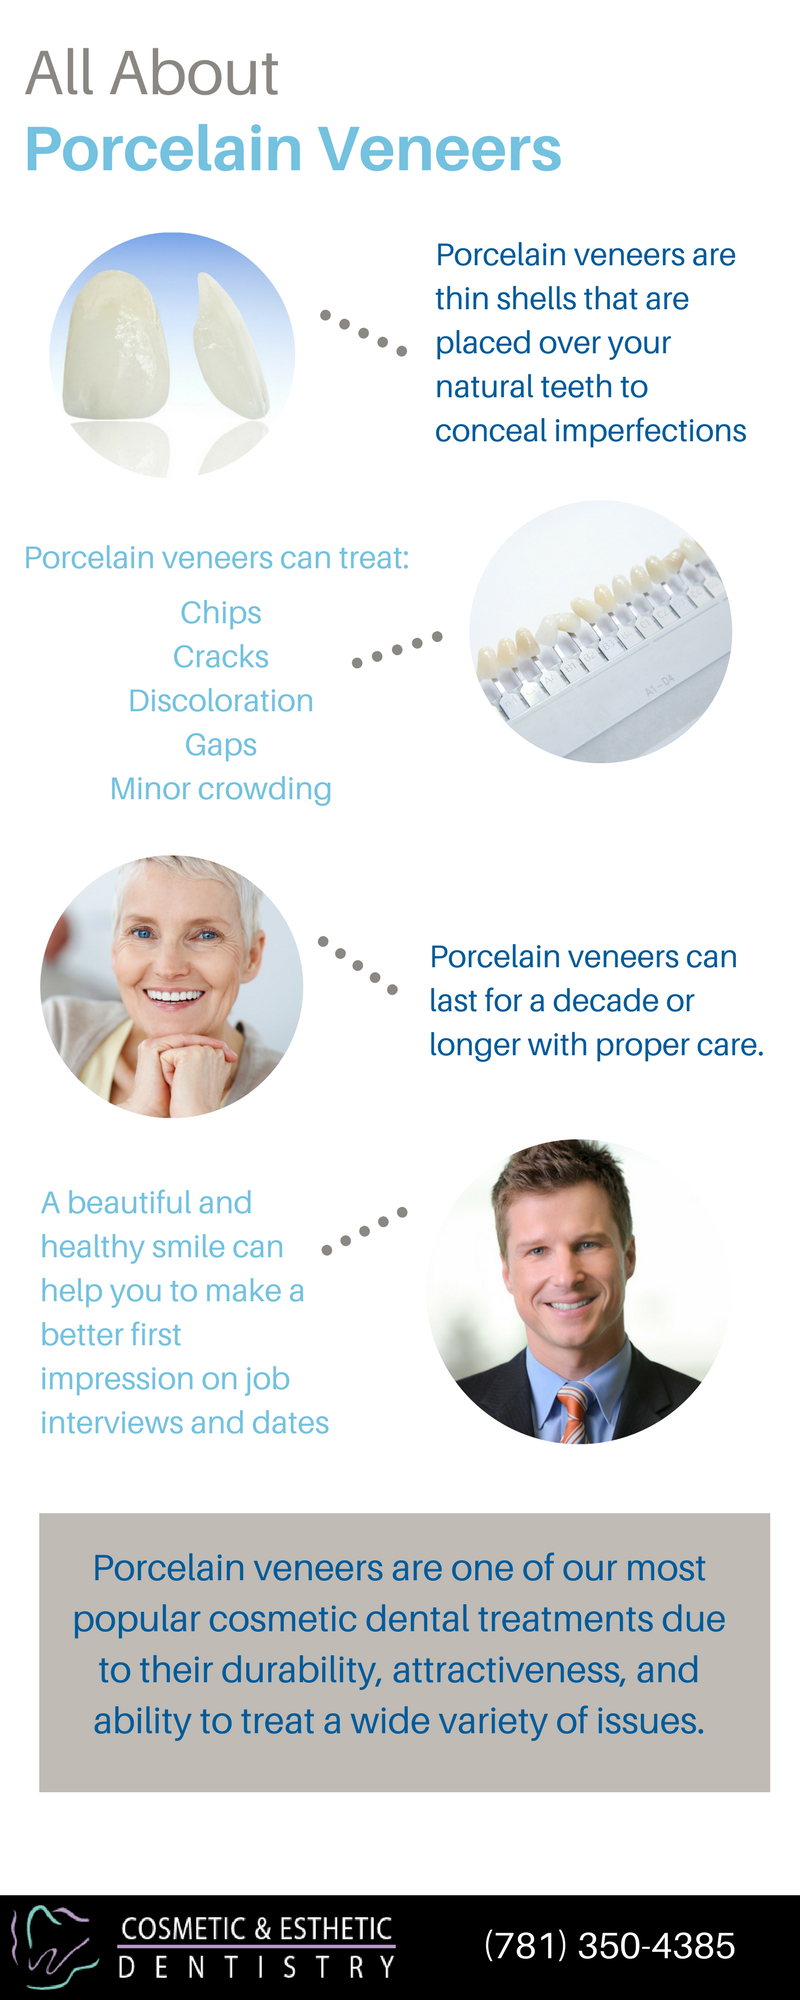 Porcelain Veneers Facts and Benefits | Boston Cosmetic Dentist